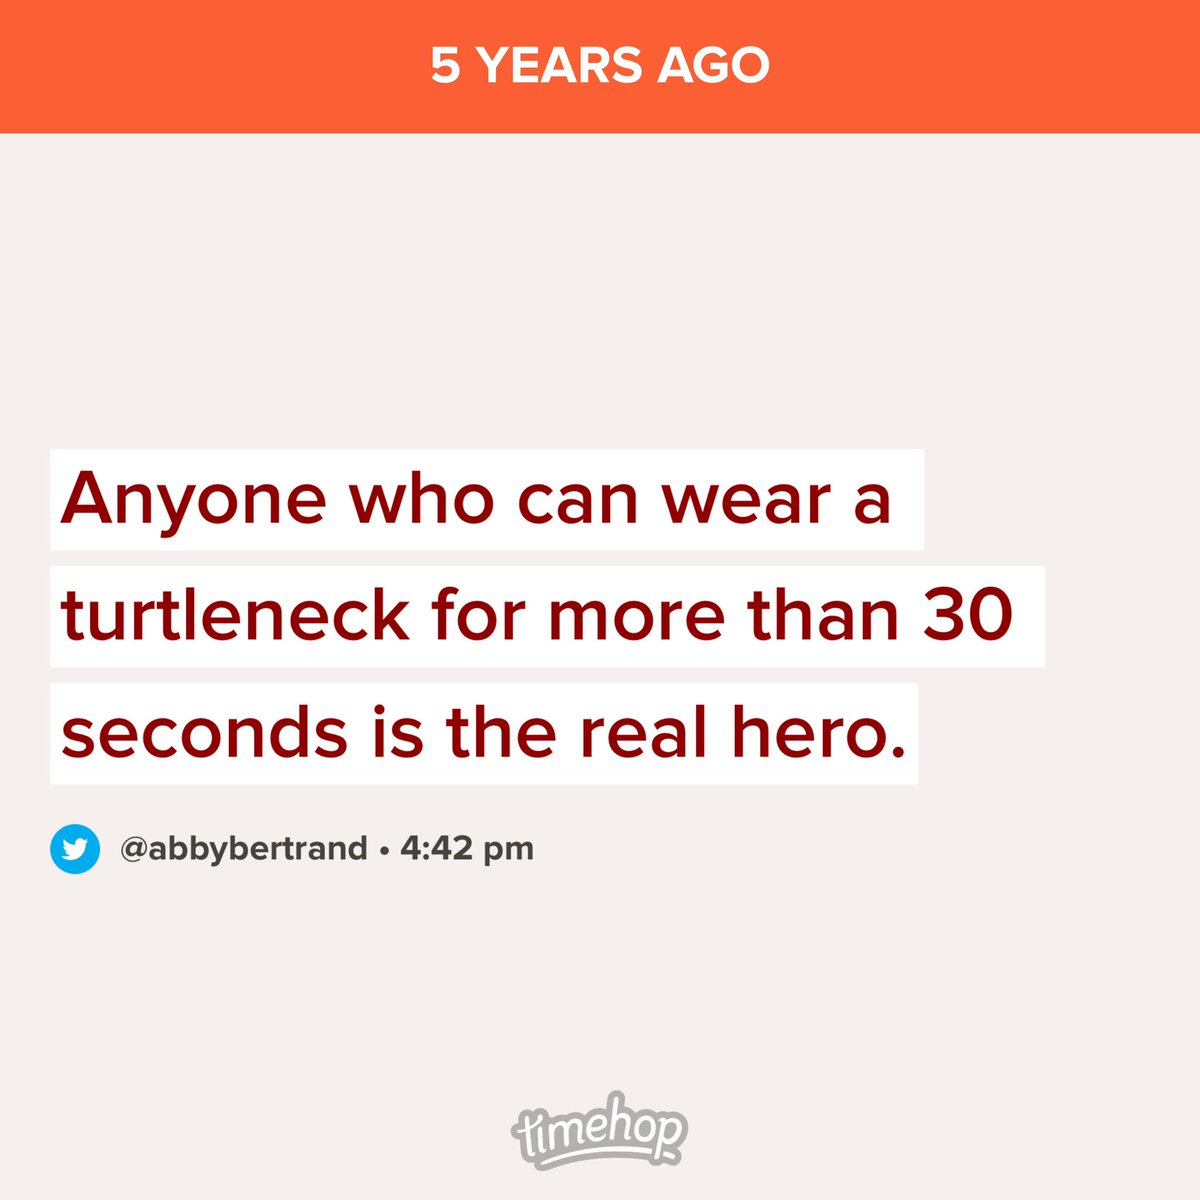 I stand by this tweet